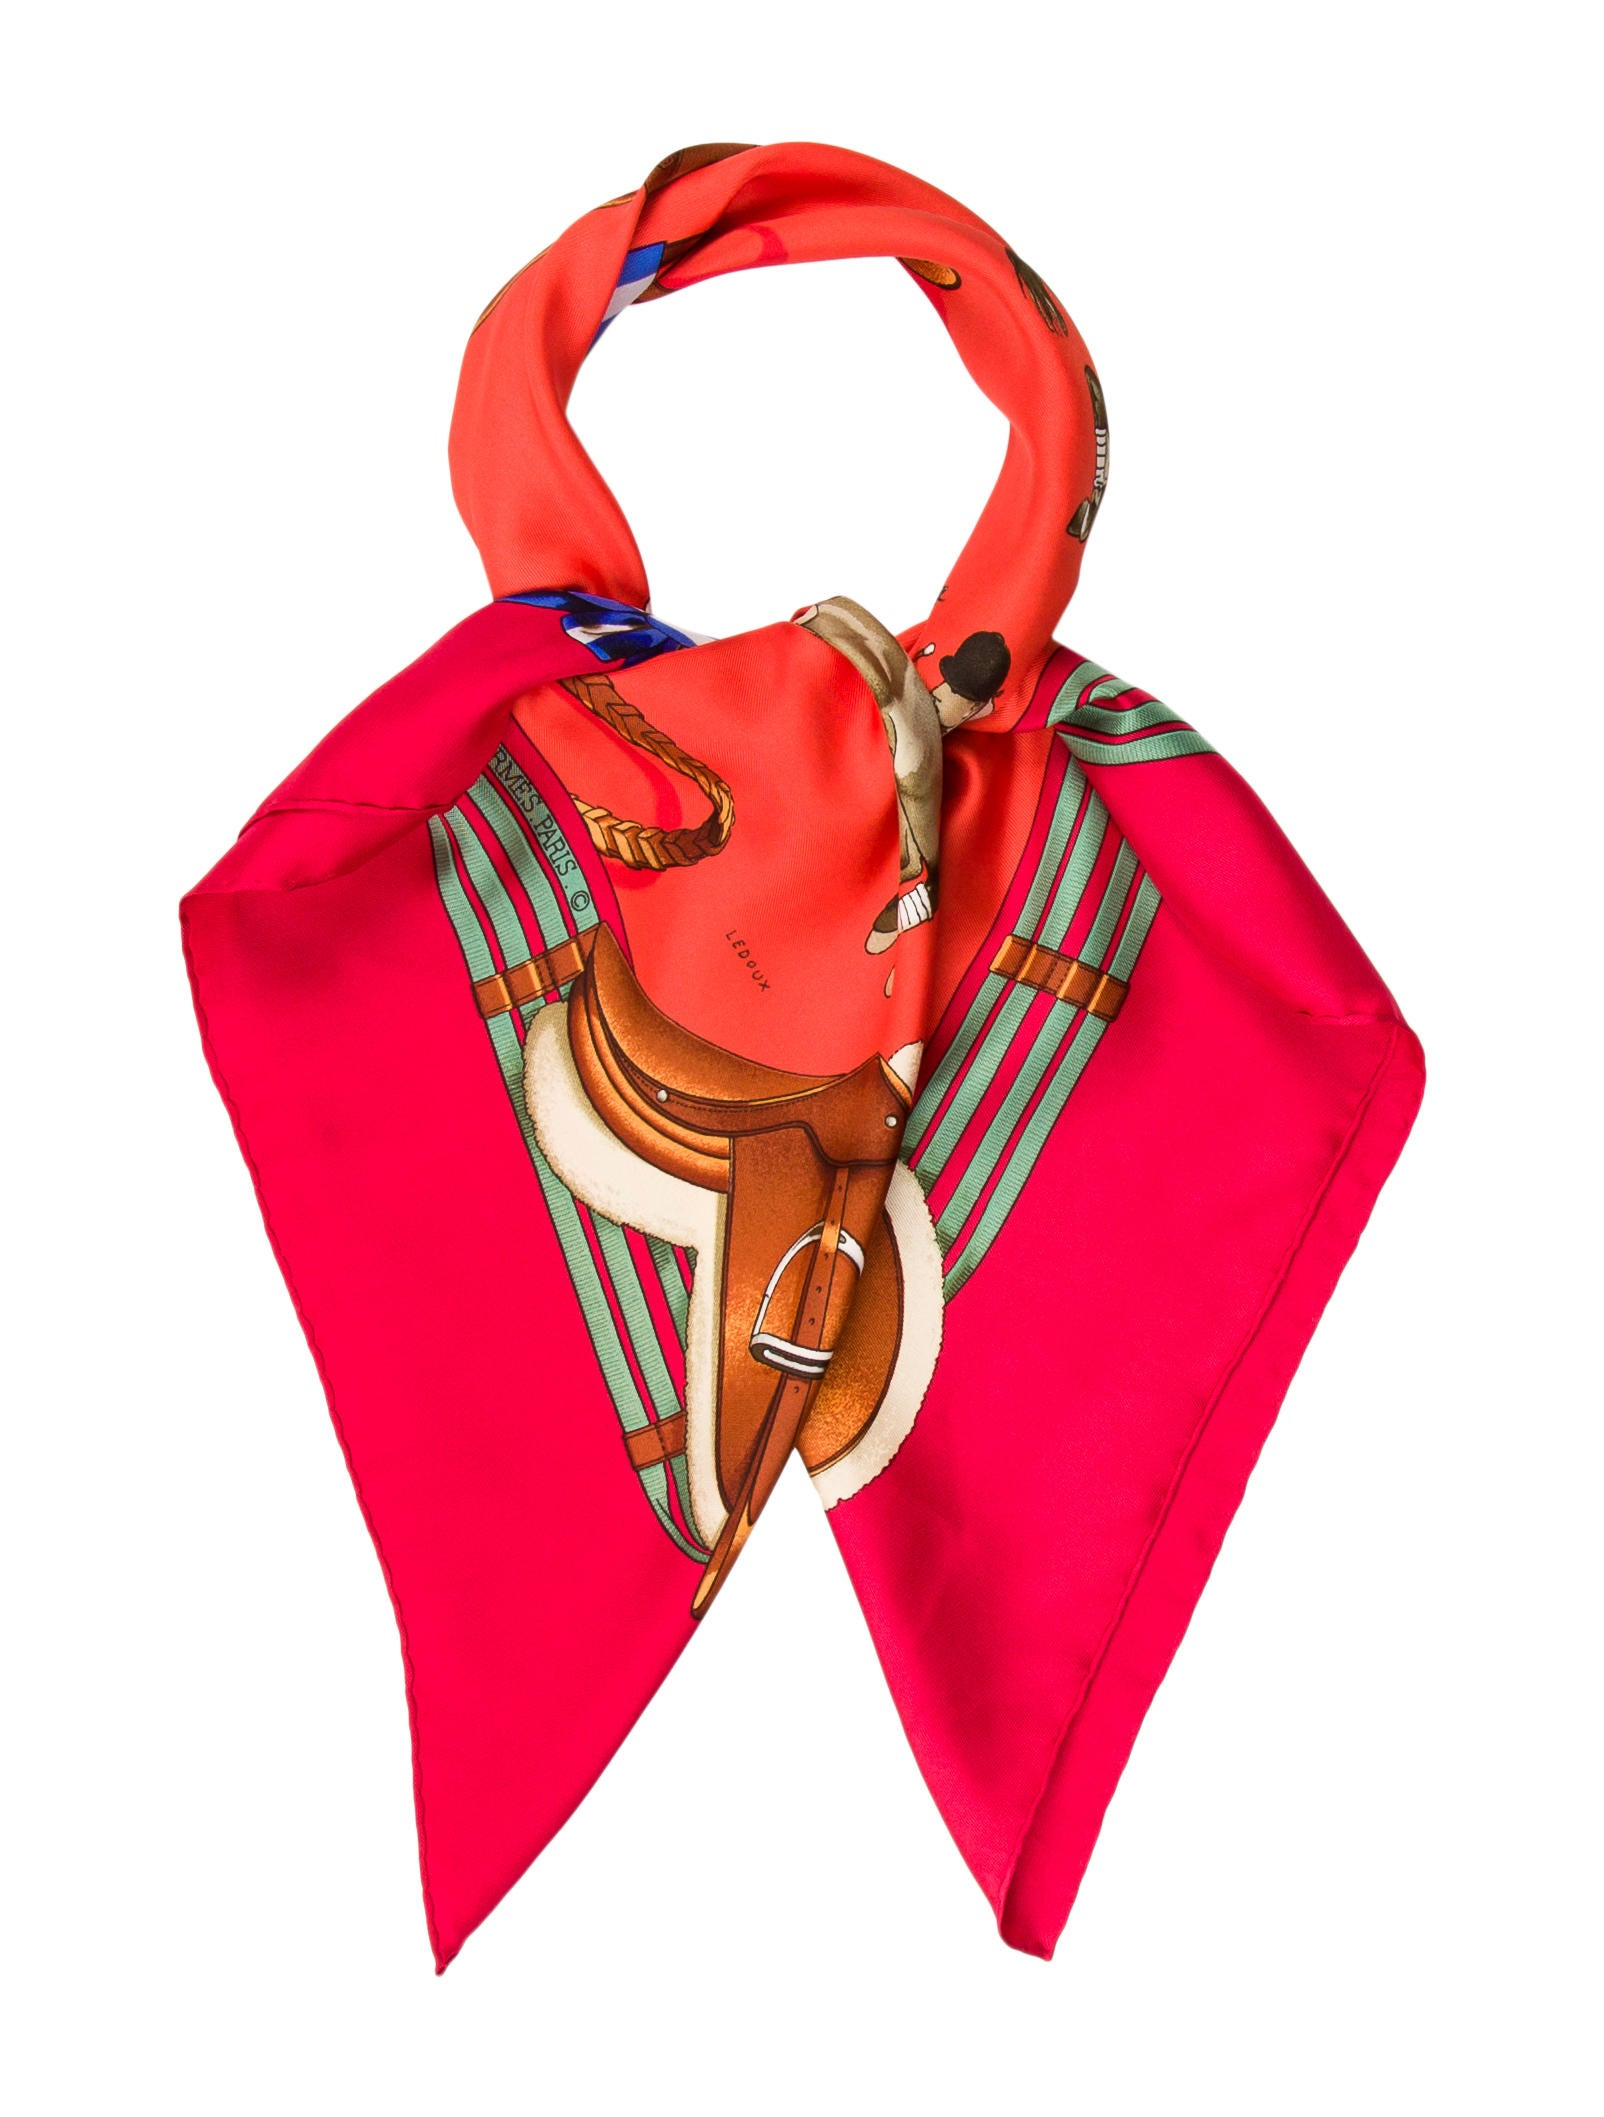 herm 232 s jumping scarf accessories her109942 the realreal